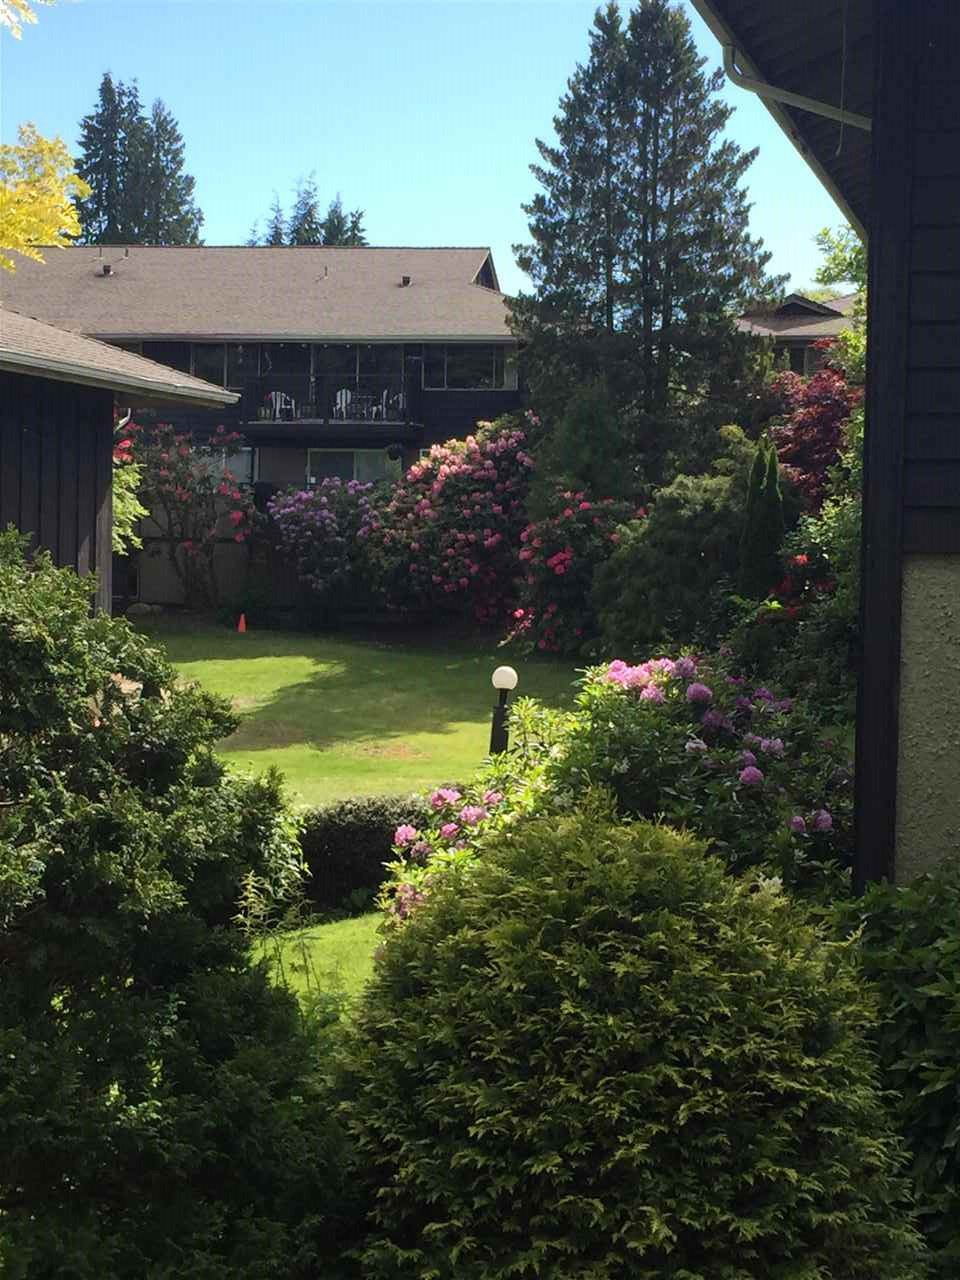 """Main Photo: 306 555 W 28TH Street in North Vancouver: Upper Lonsdale Townhouse for sale in """"CEDARBROOKE VILLAGE"""" : MLS®# R2138435"""